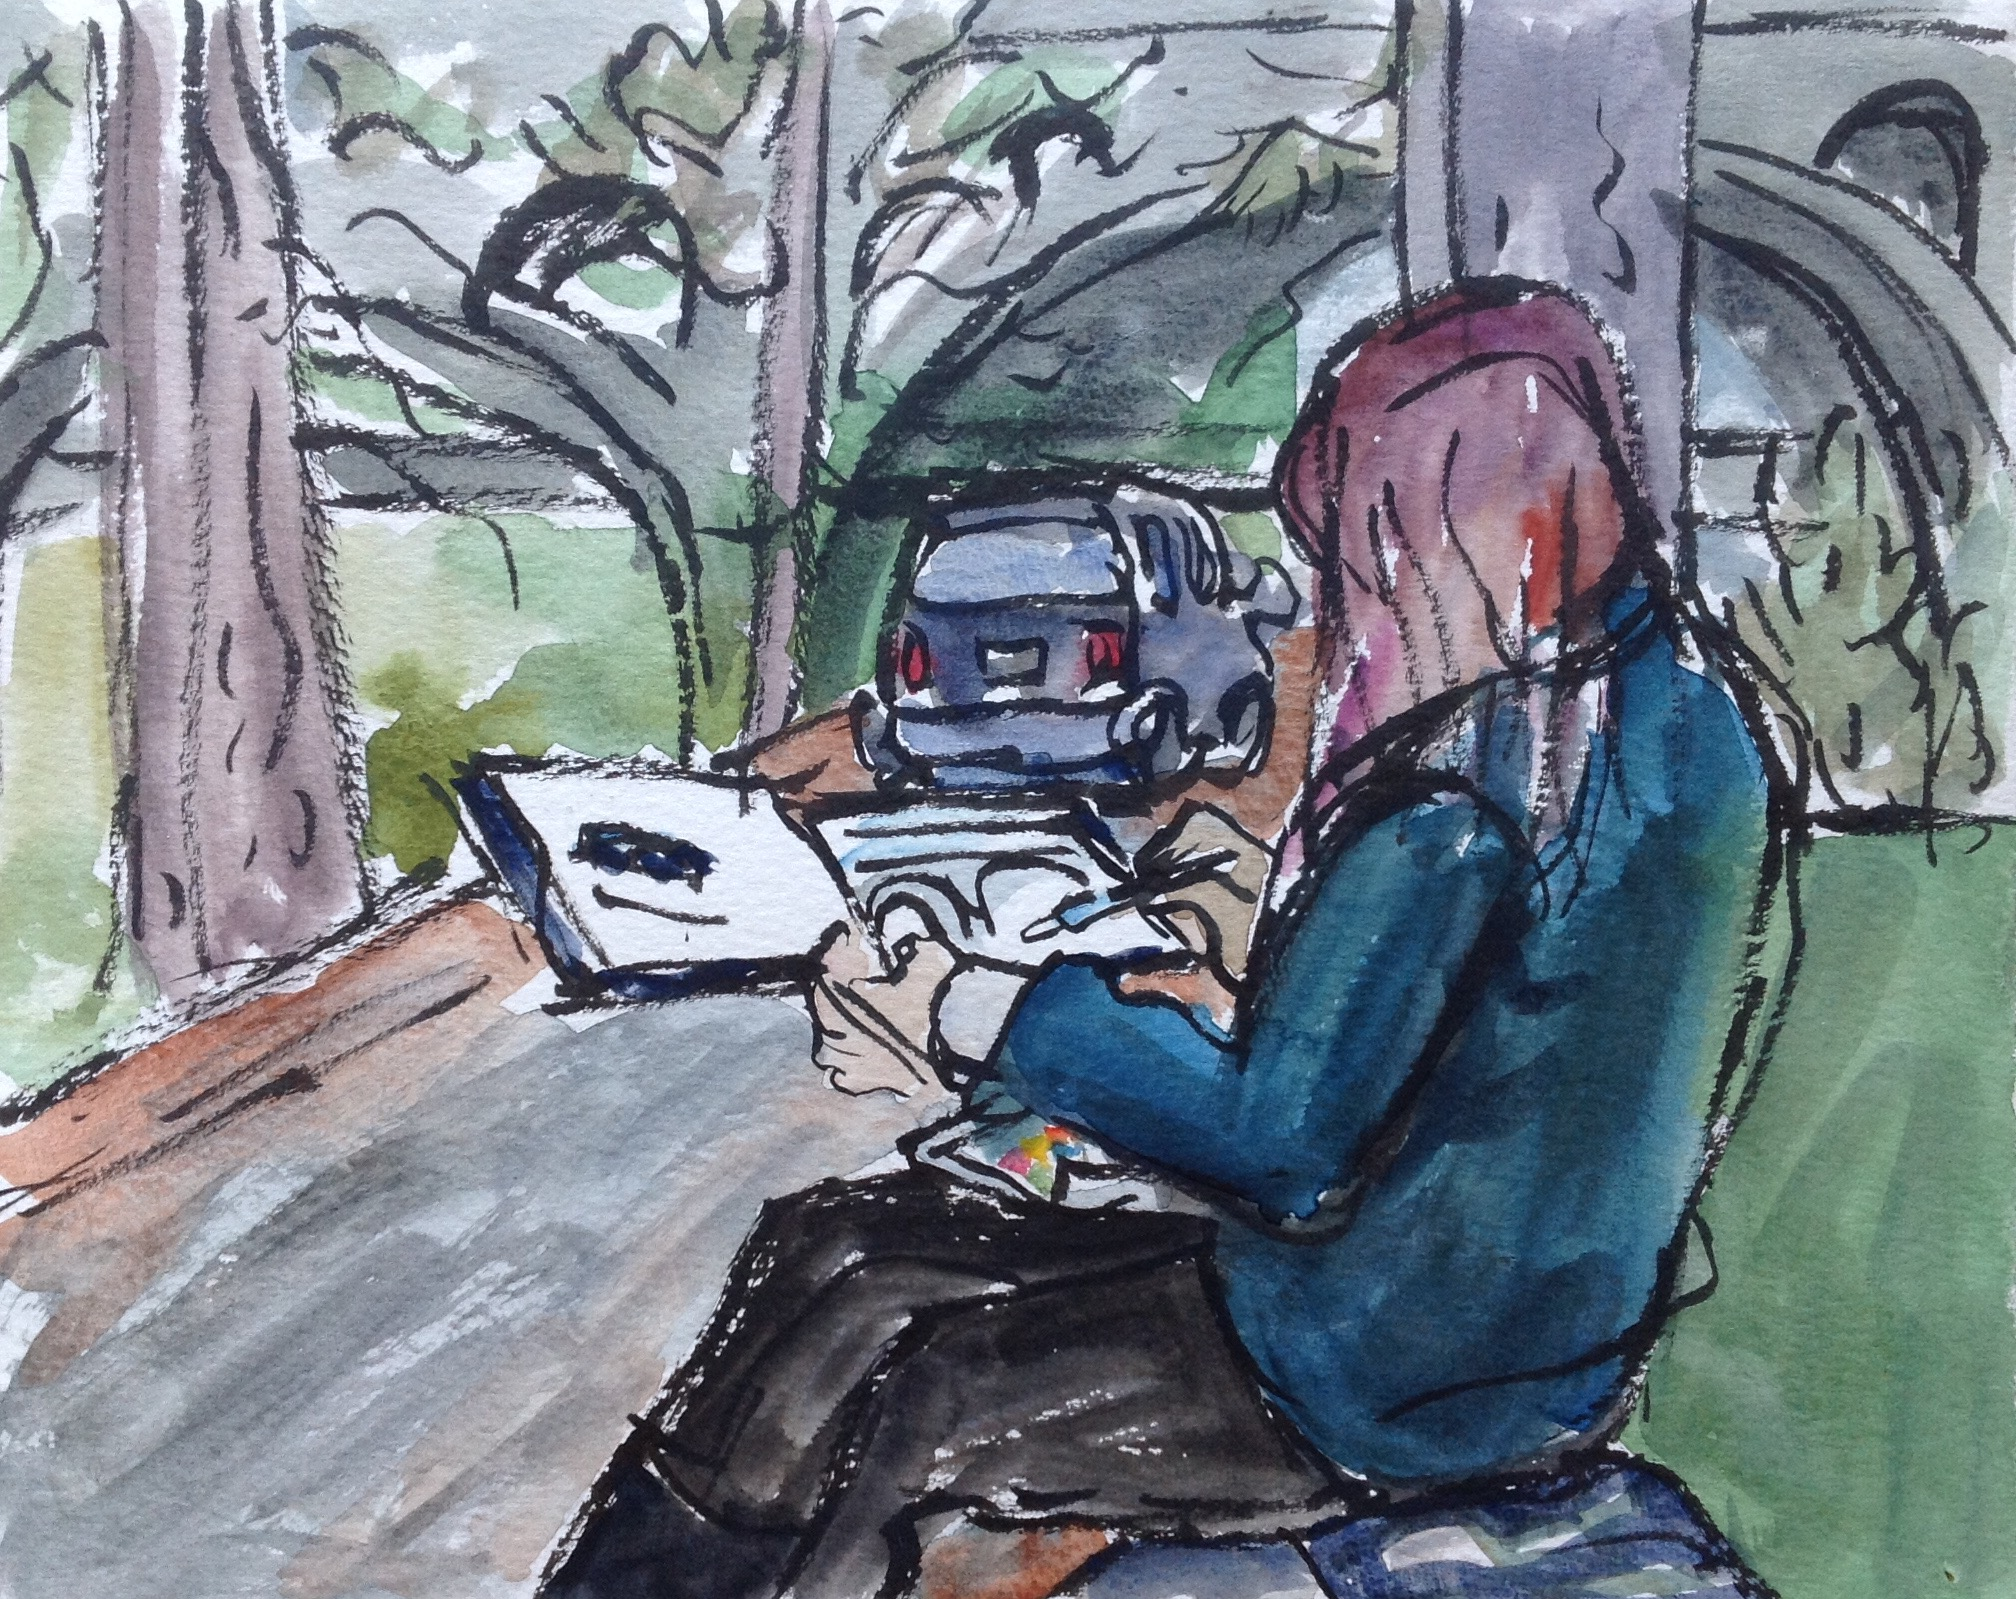 Sketching other sketchers when out on an excursion is a delightful, meta practice. They are usually engrossed in what they are doing and don't move around a lot!